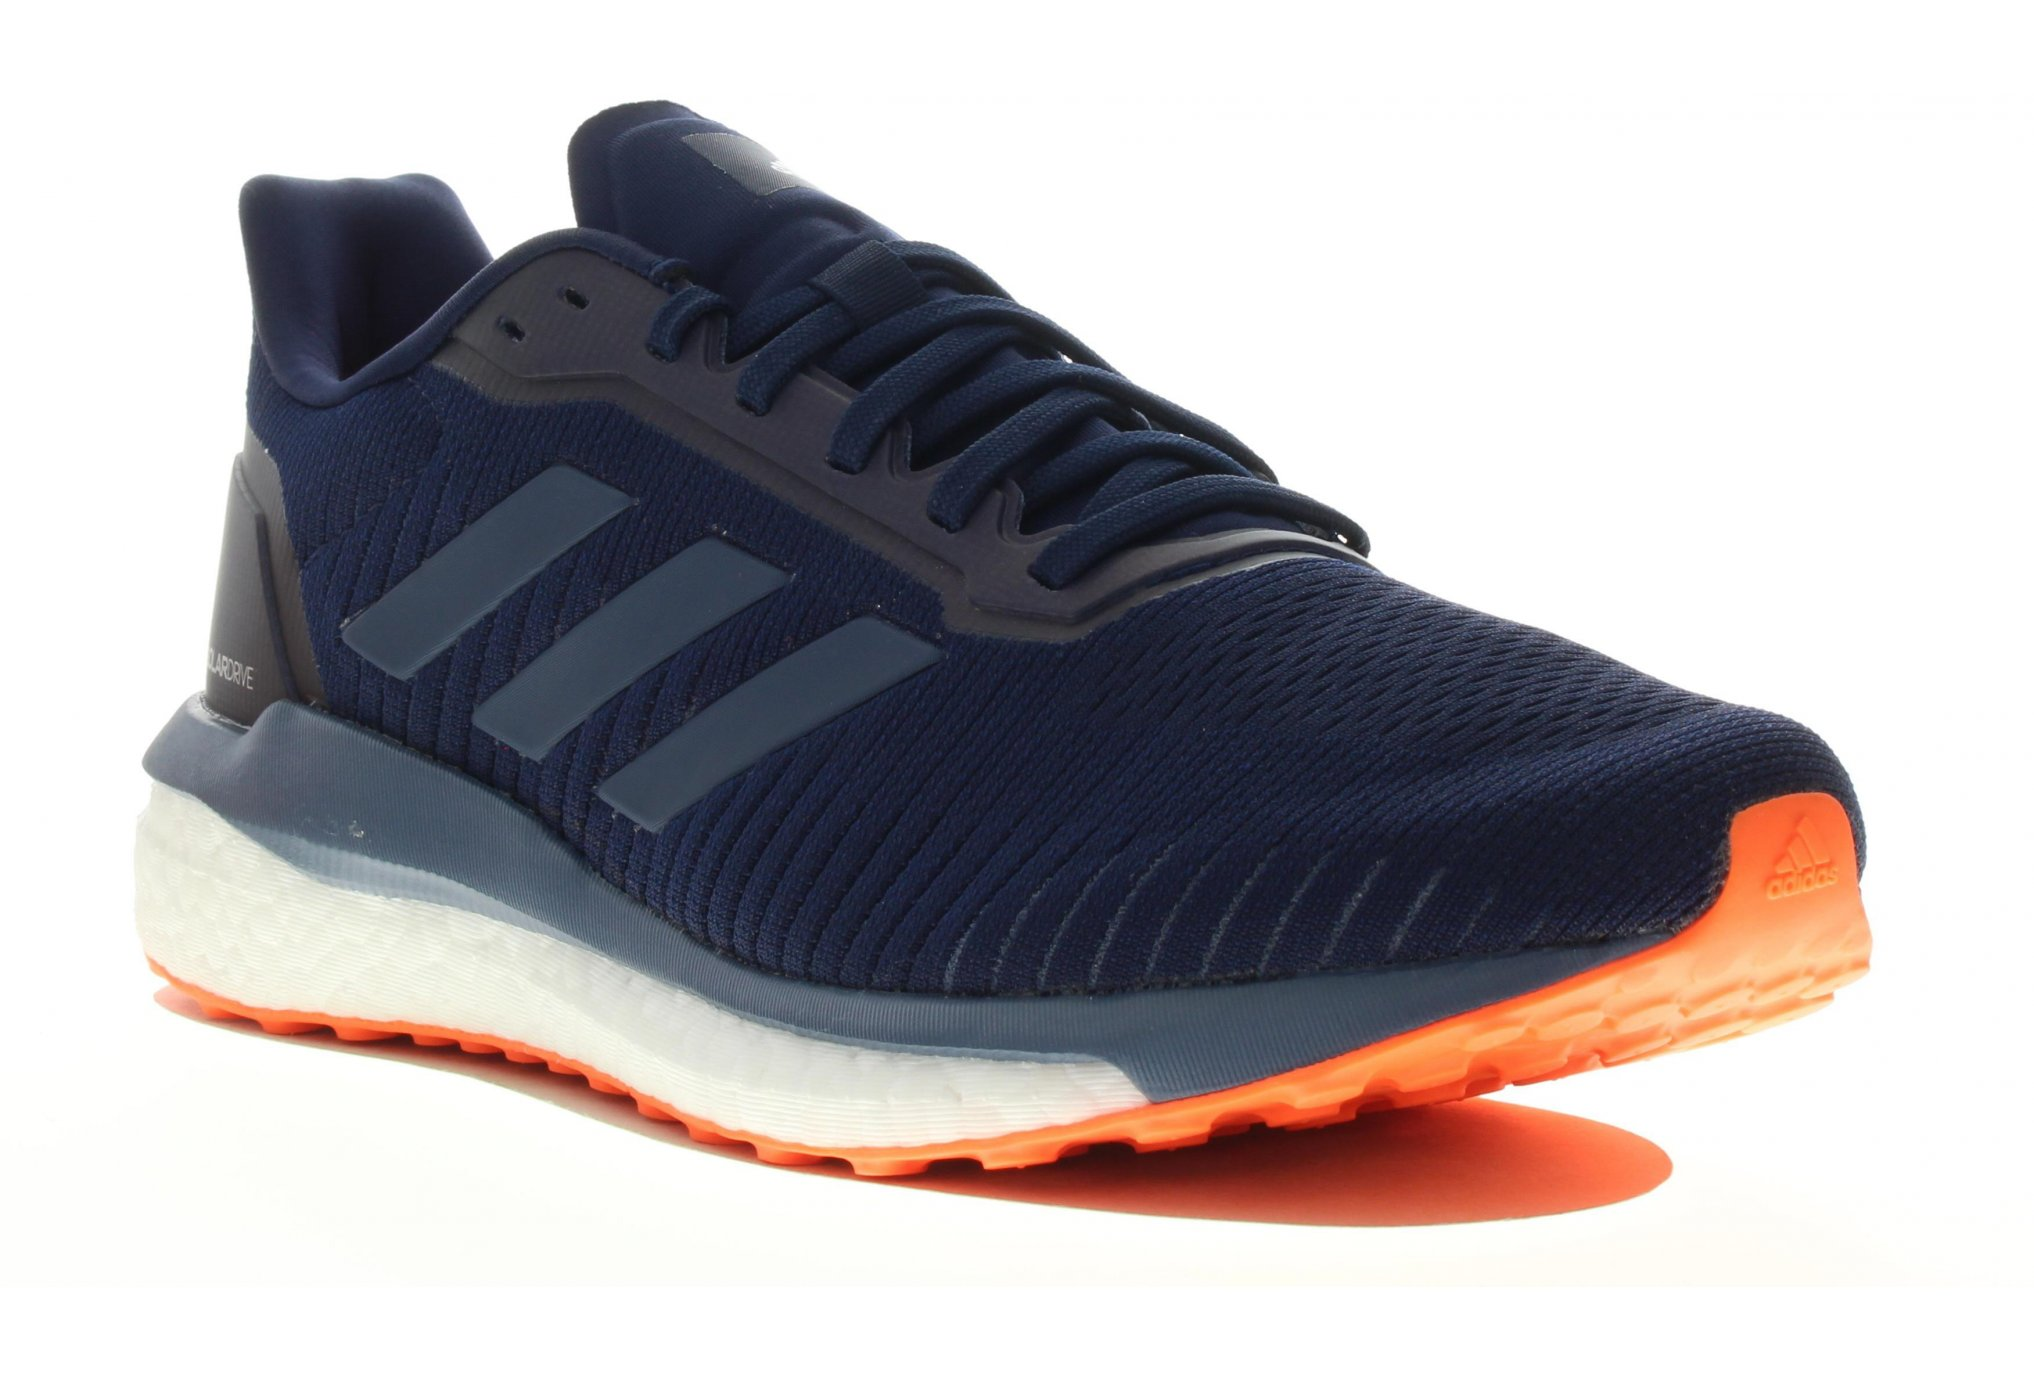 adidas Solar Drive 19 Chaussures homme